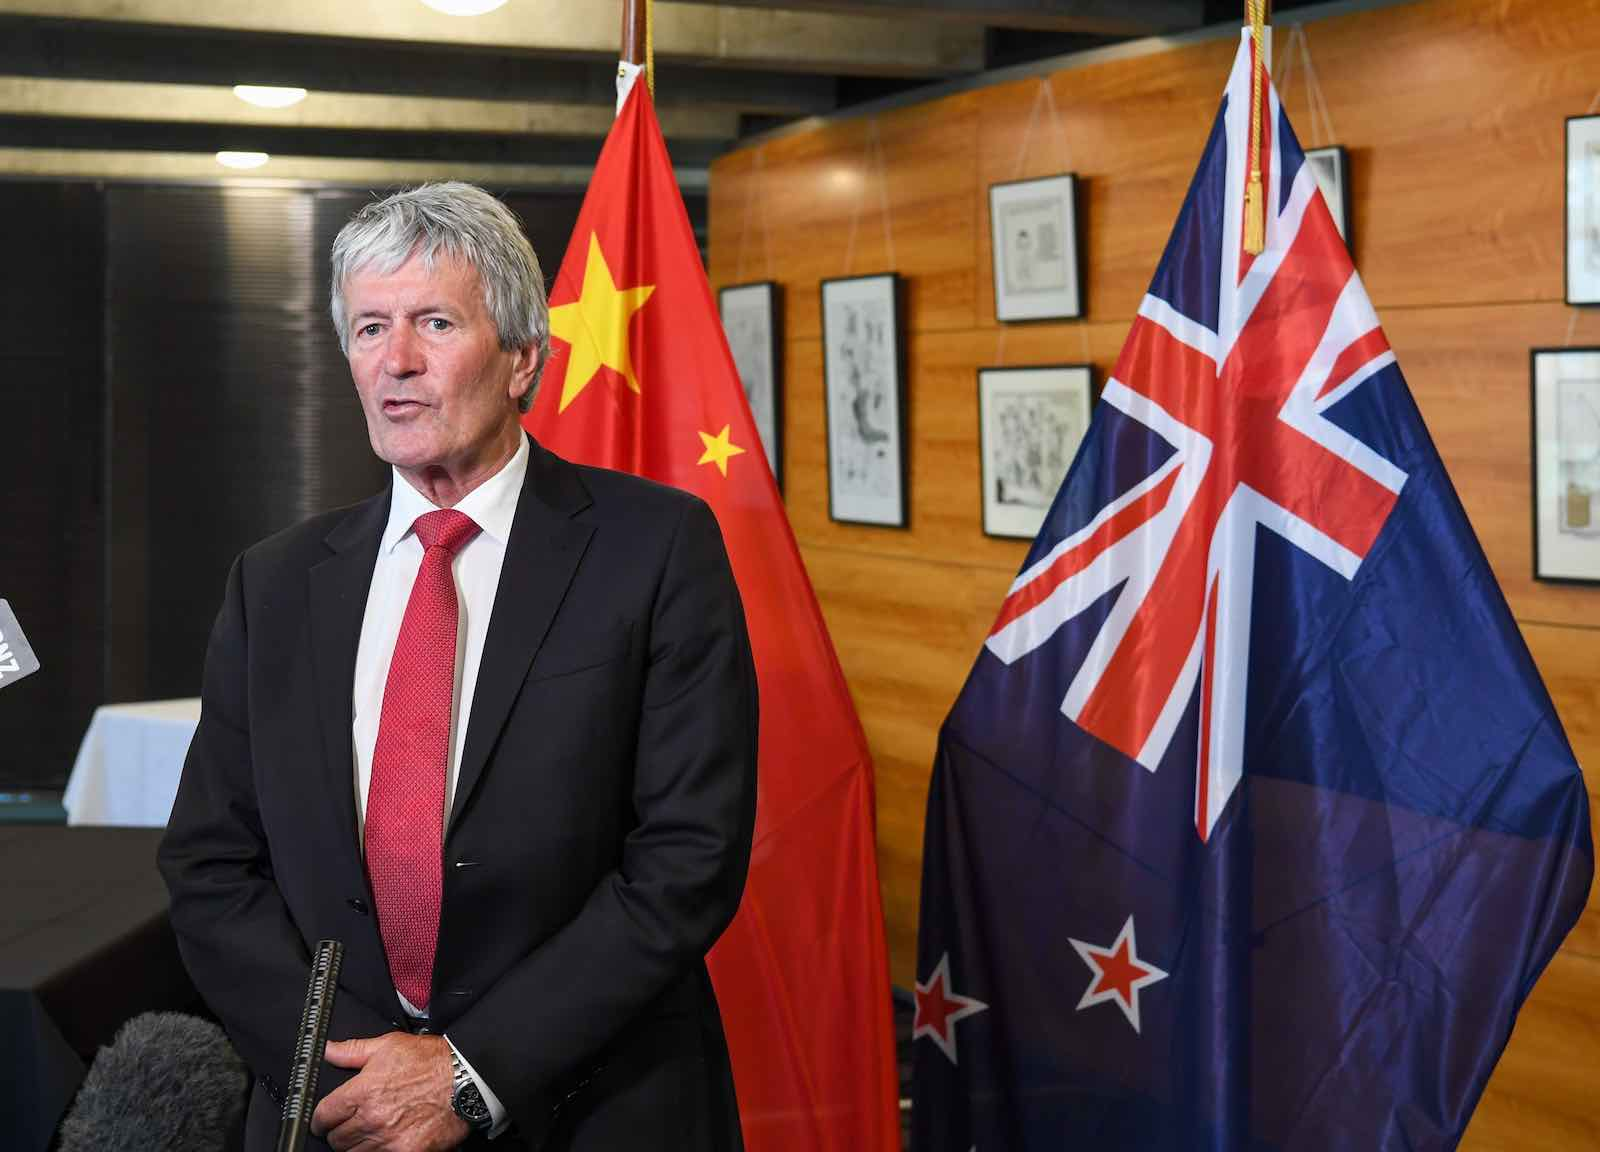 New Zealand's Trade Minister Damien O'Connor announces an upgraded FTA between China and New Zealand in Wellington, New Zealand on 26 January, 2021 (Guo Lei/Xinhua via Getty)